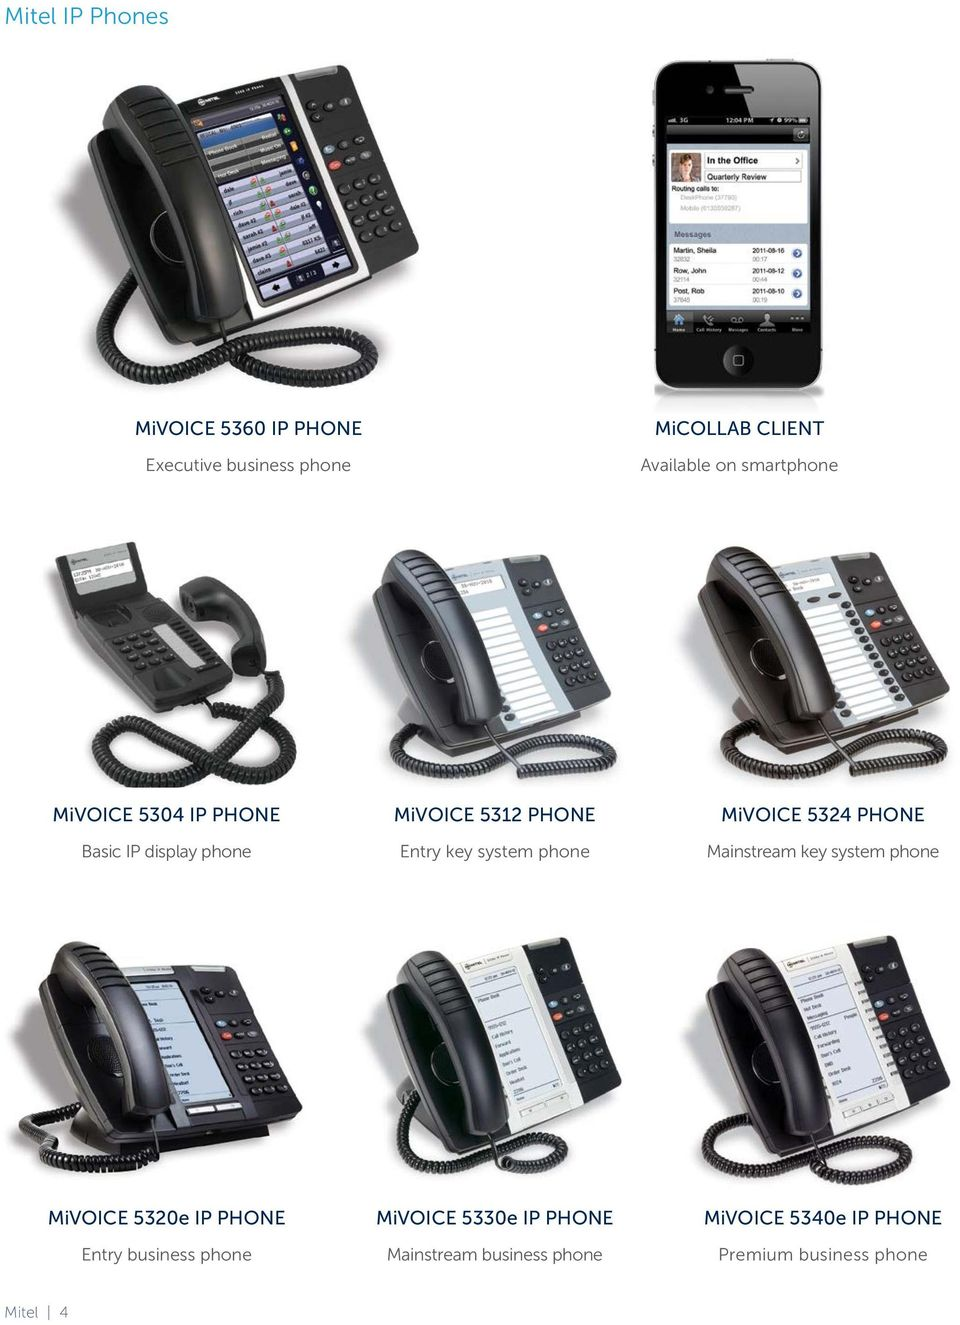 phone MiVOICE 5324 PHONE Mainstream key system phone MiVOICE 5320e IP PHONE Entry business